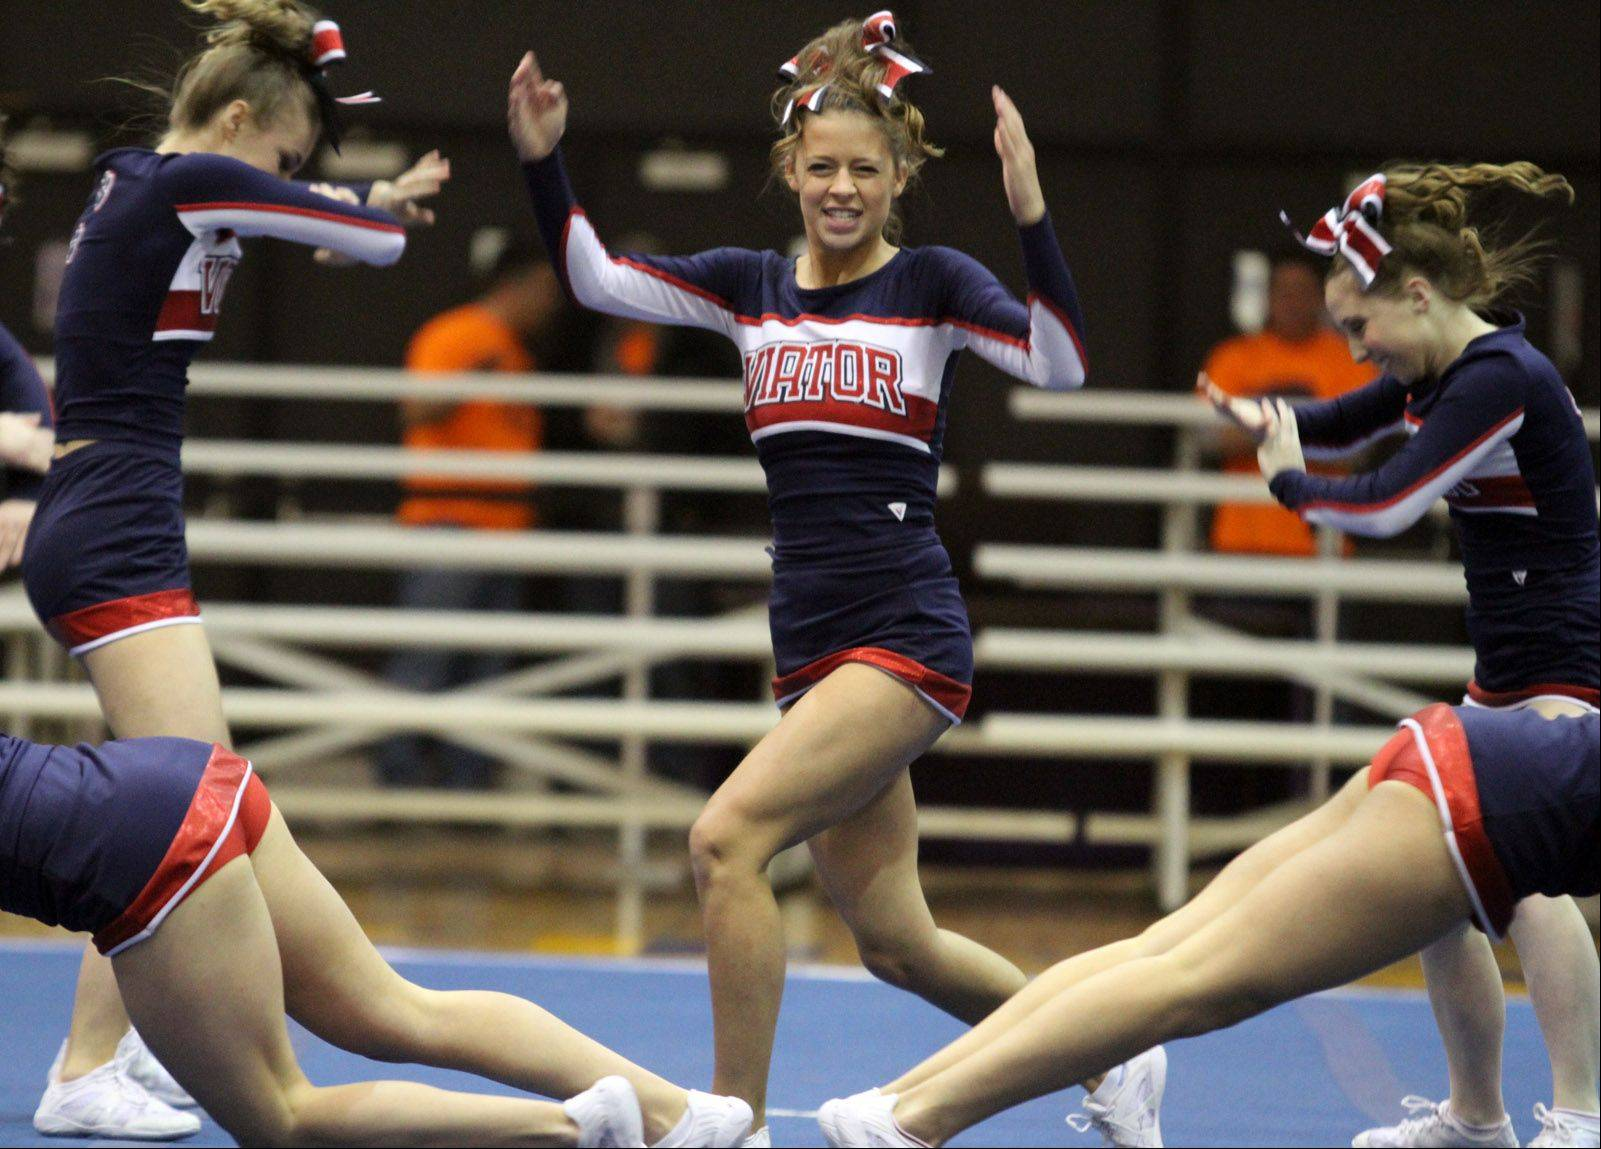 St. Viator High School performs at the IHSA competitive cheerleading sectionals in Rolling Meadows on Saturday.